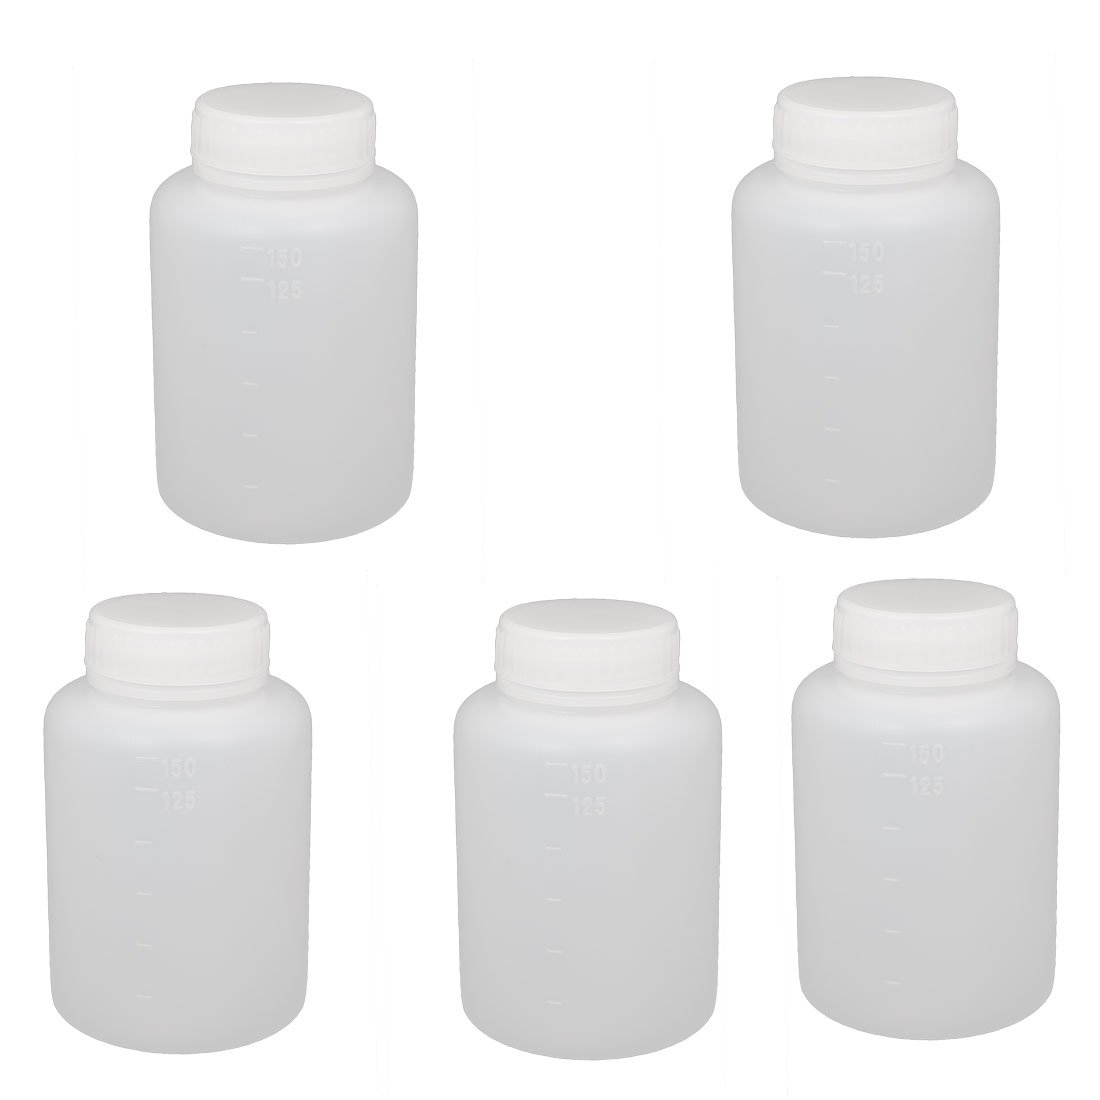 uxcell 5Pcs 150ml Plastic Wide Mouth Laboratory Reagent Bottle Sample Sealling Bottle White